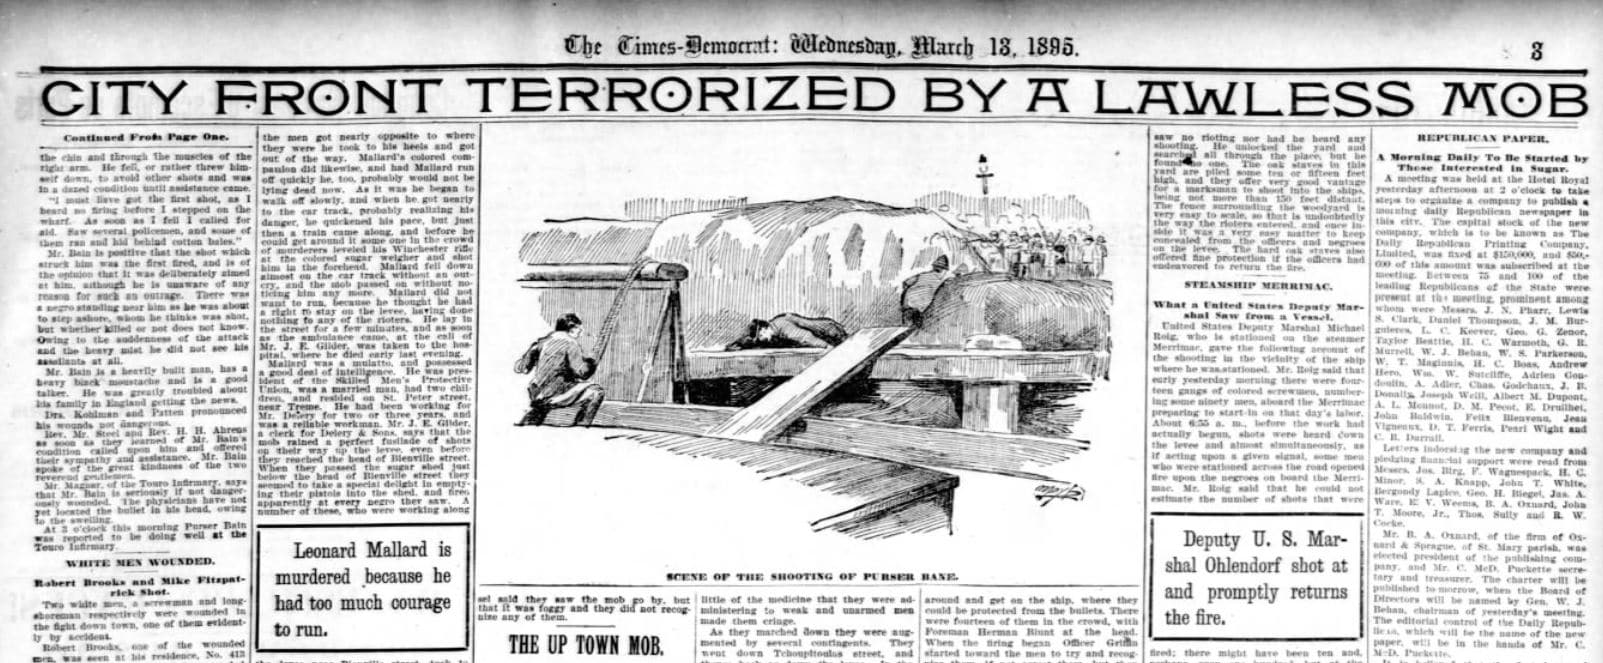 Headline from New Orleans Paper after Massacre